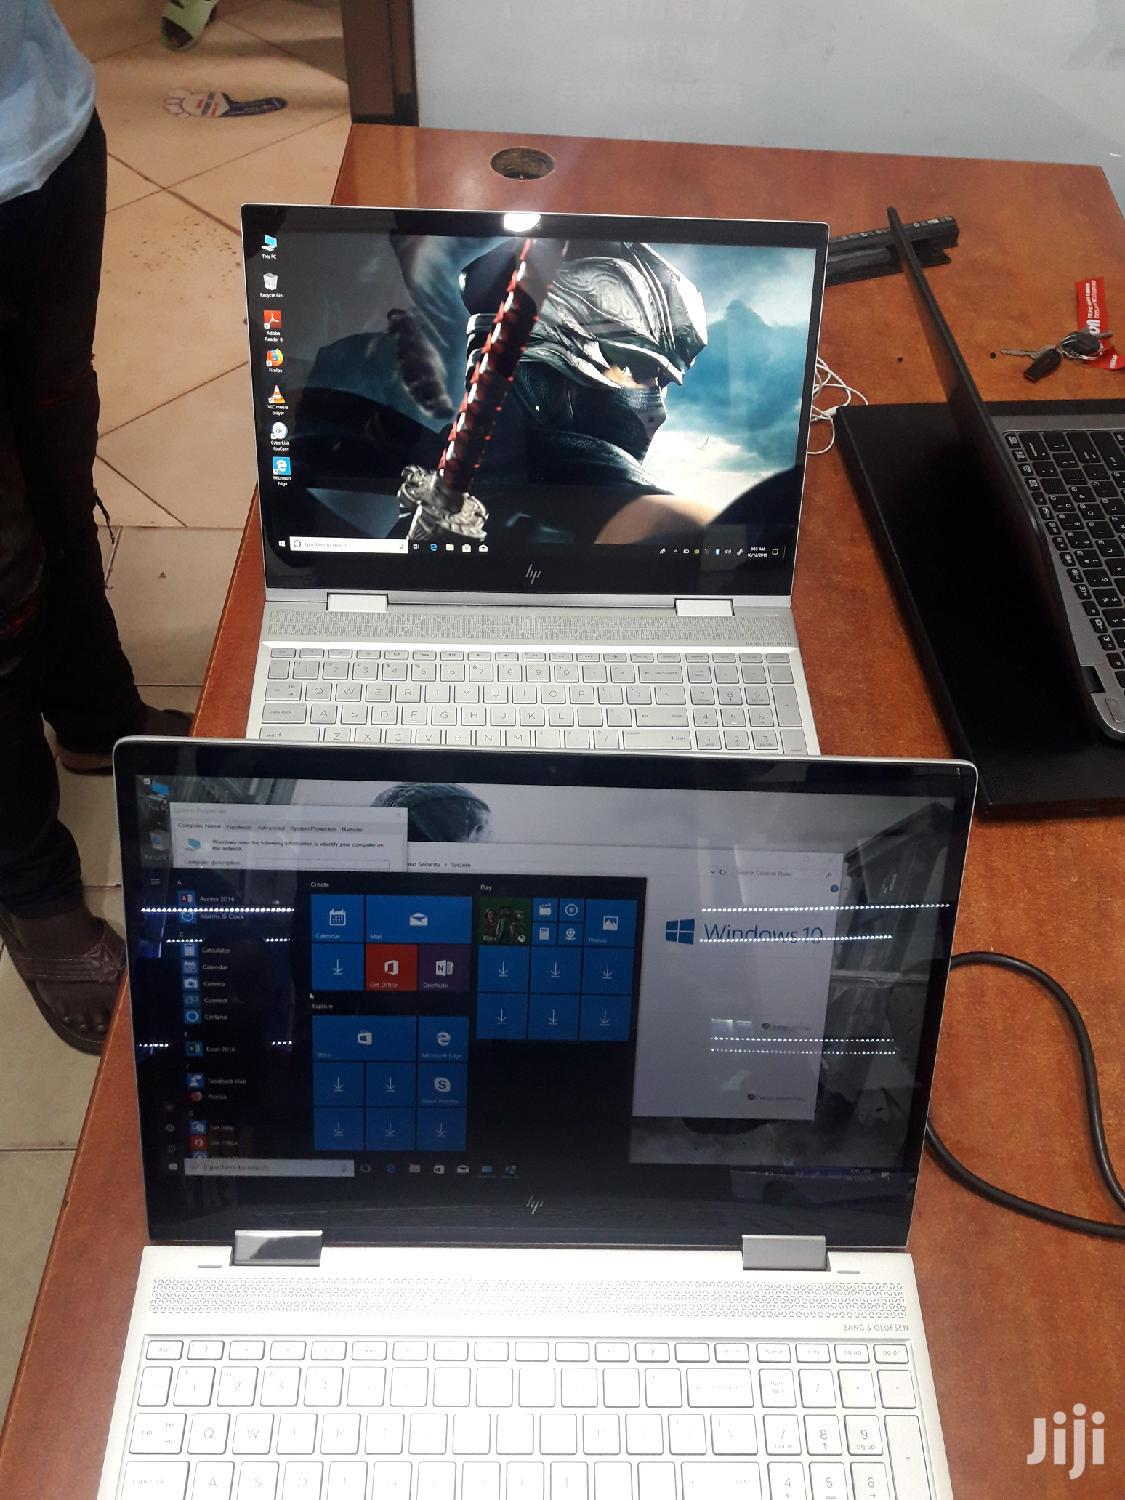 New Laptop HP Envy 13t 8GB Intel Core I5 SSHD (Hybrid) 256GB | Laptops & Computers for sale in Kampala, Central Region, Uganda